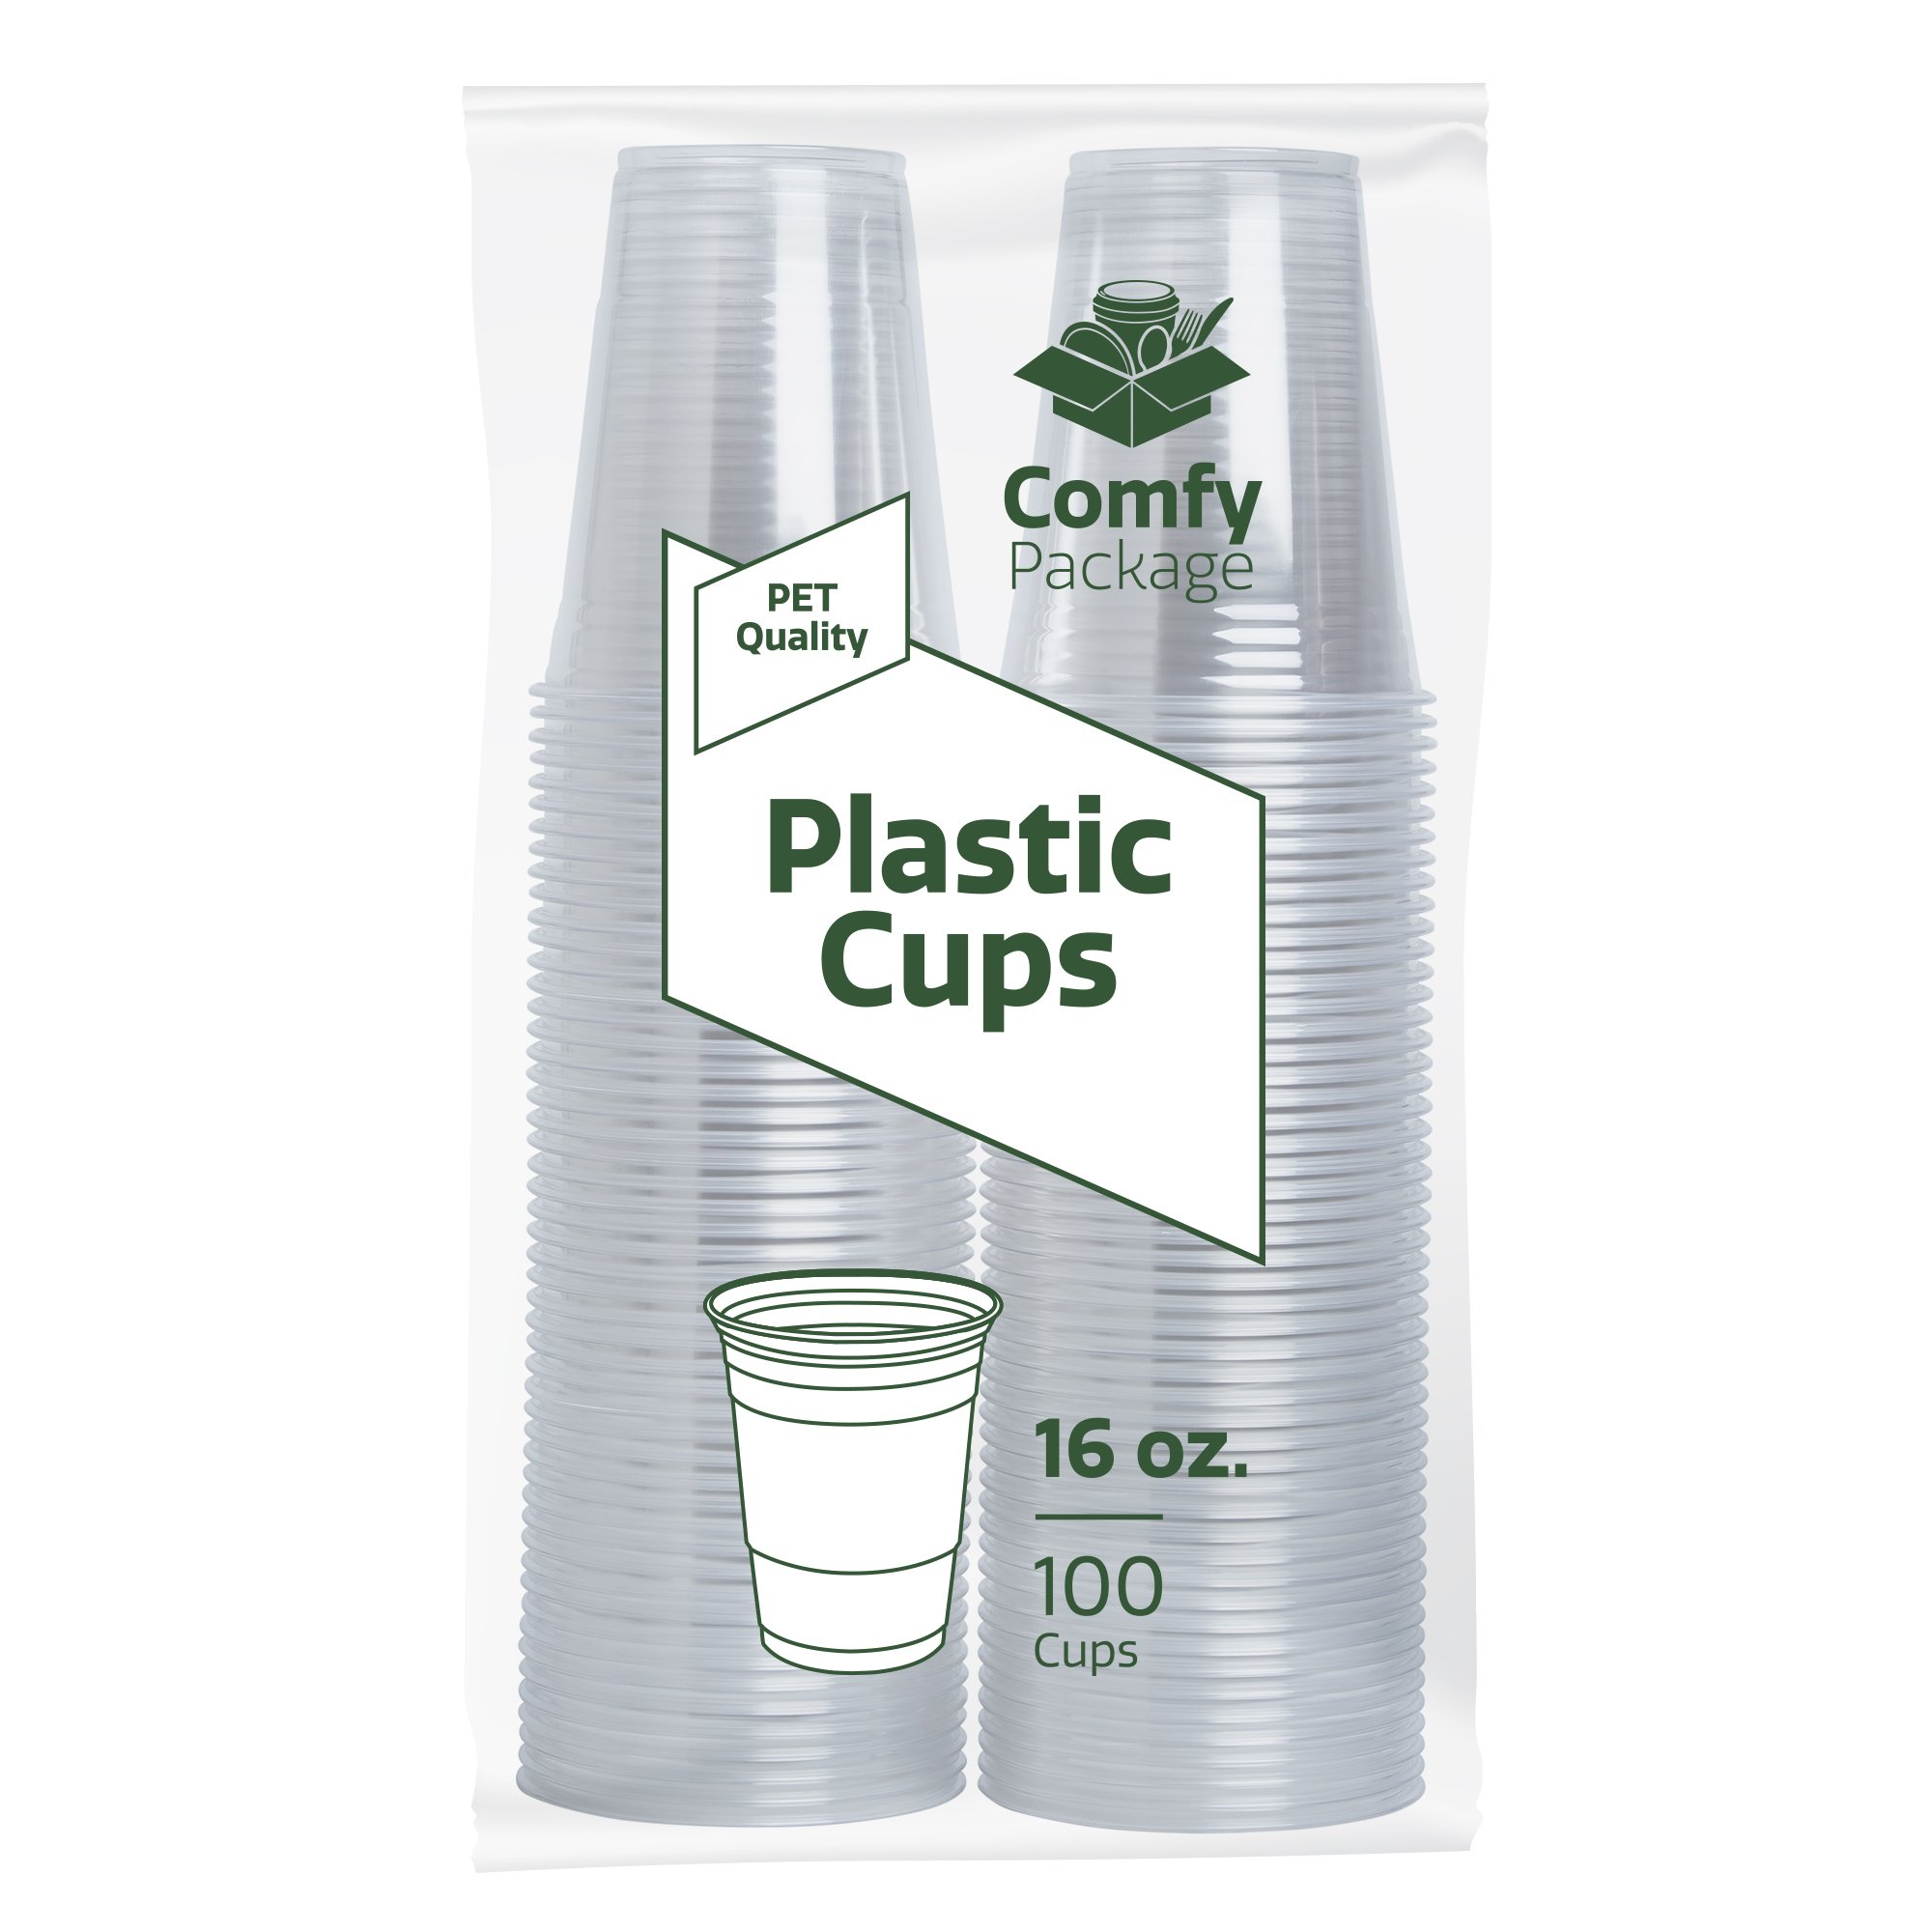 16 oz. Crystal Clear PET Plastic Cups [100 Pack] by Comfy Package (Image #3)